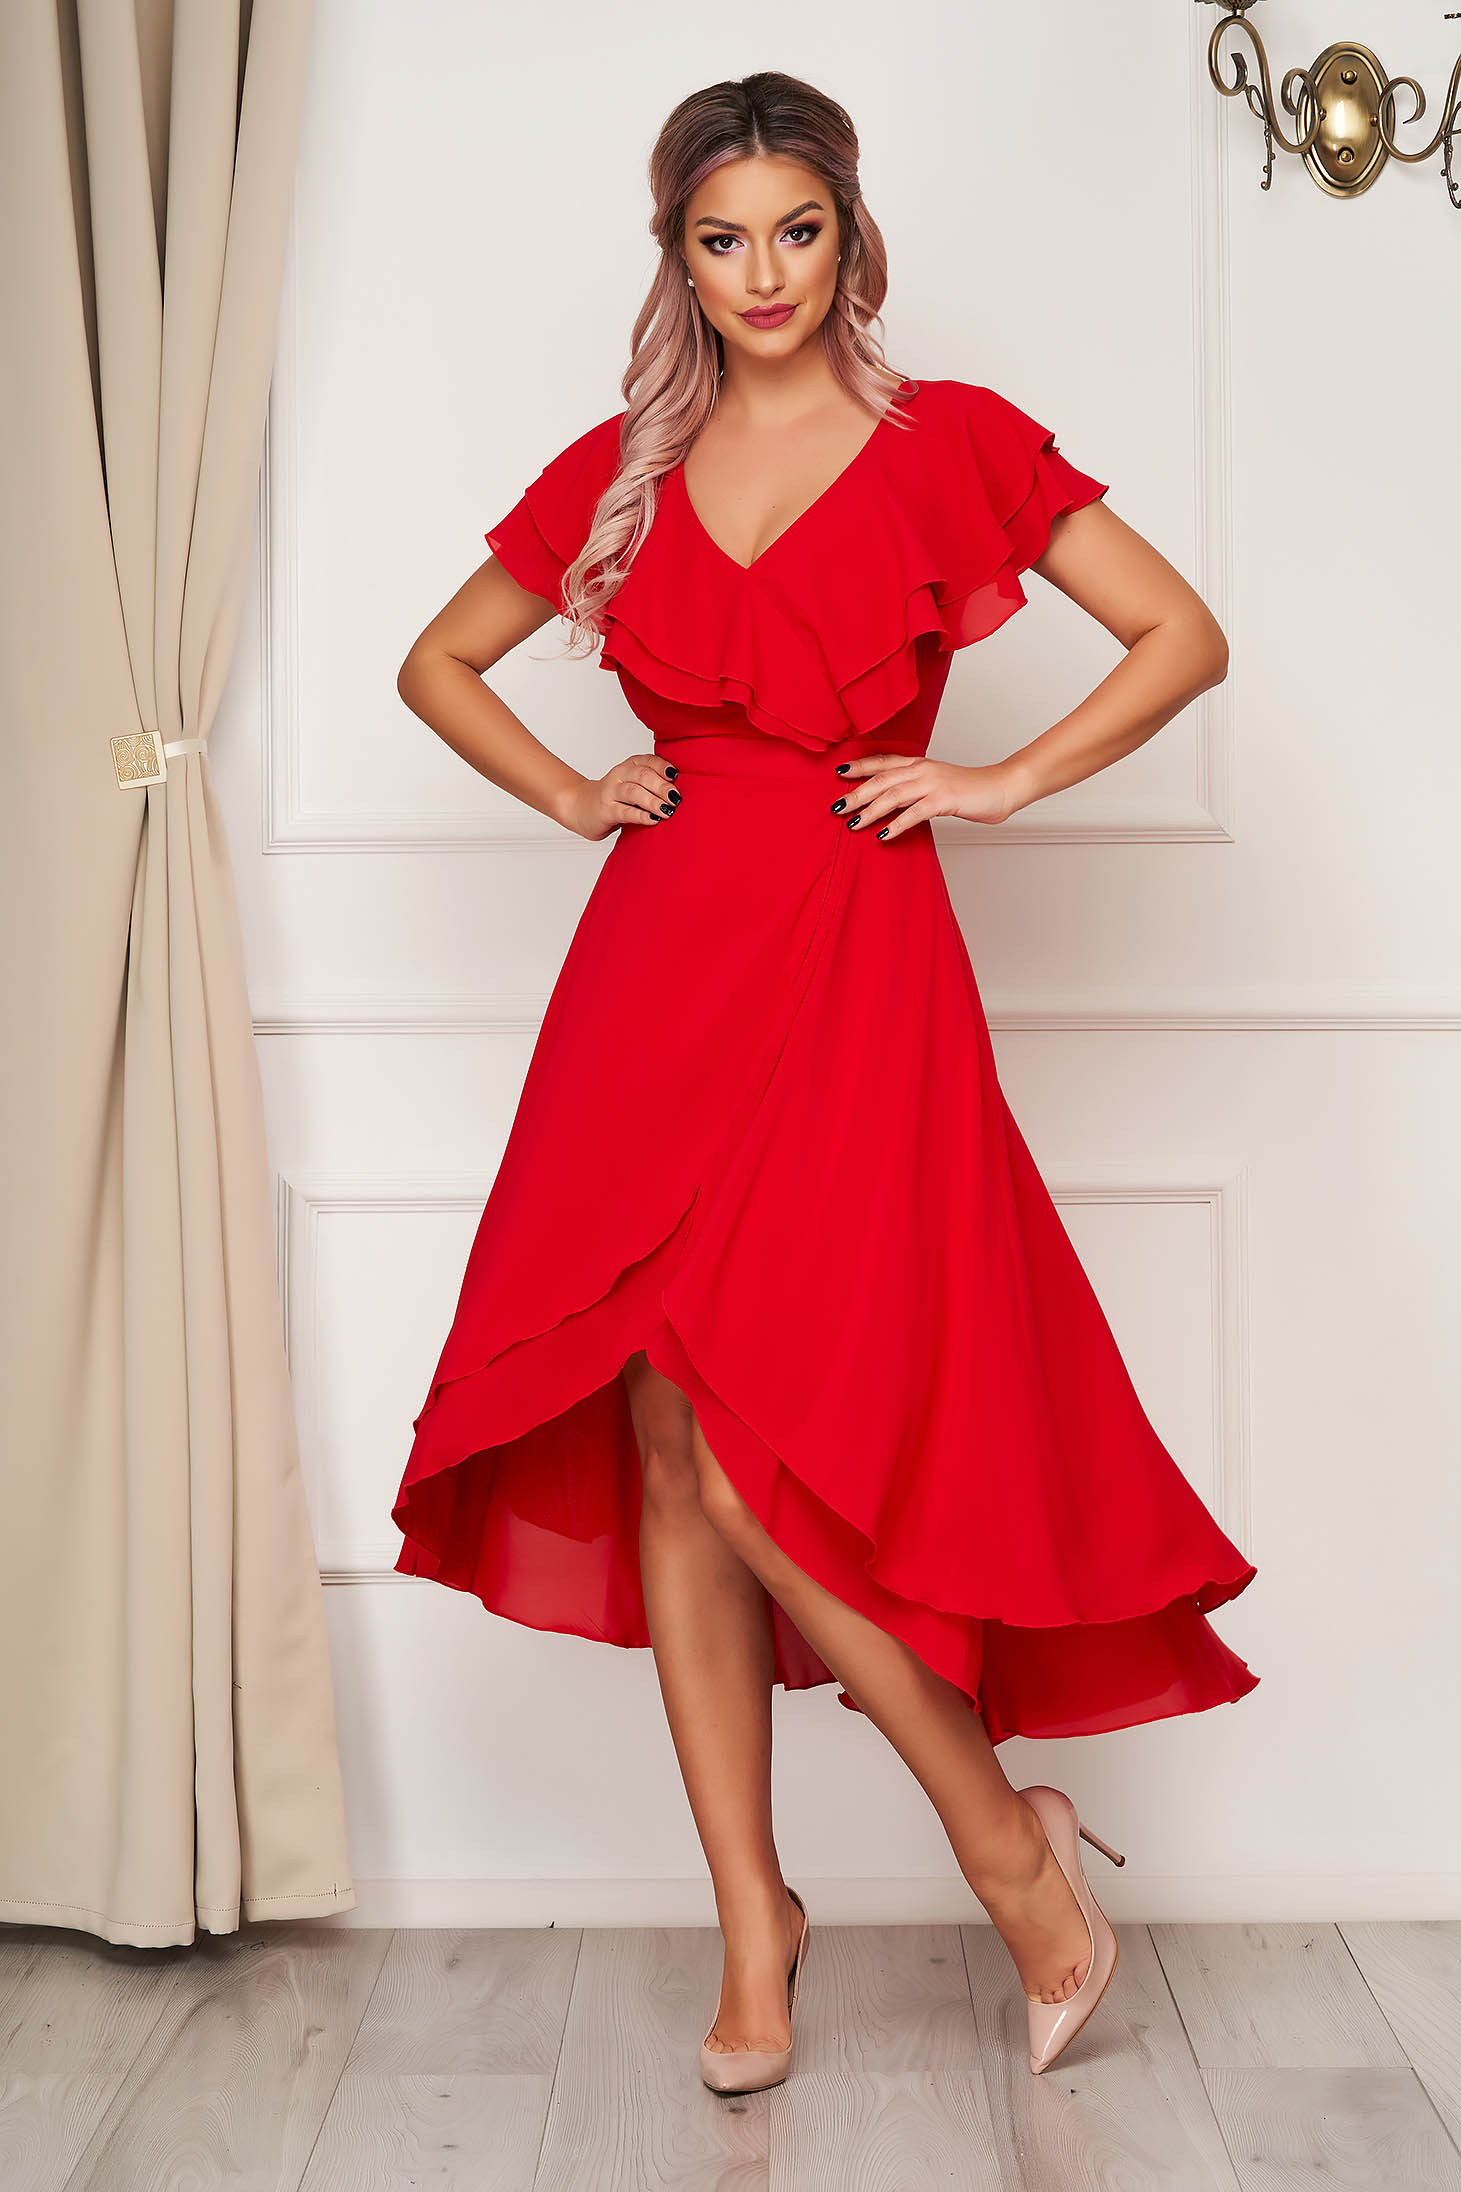 Dress StarShinerS red occasional from veil fabric with ruffle details asymmetrical cloche